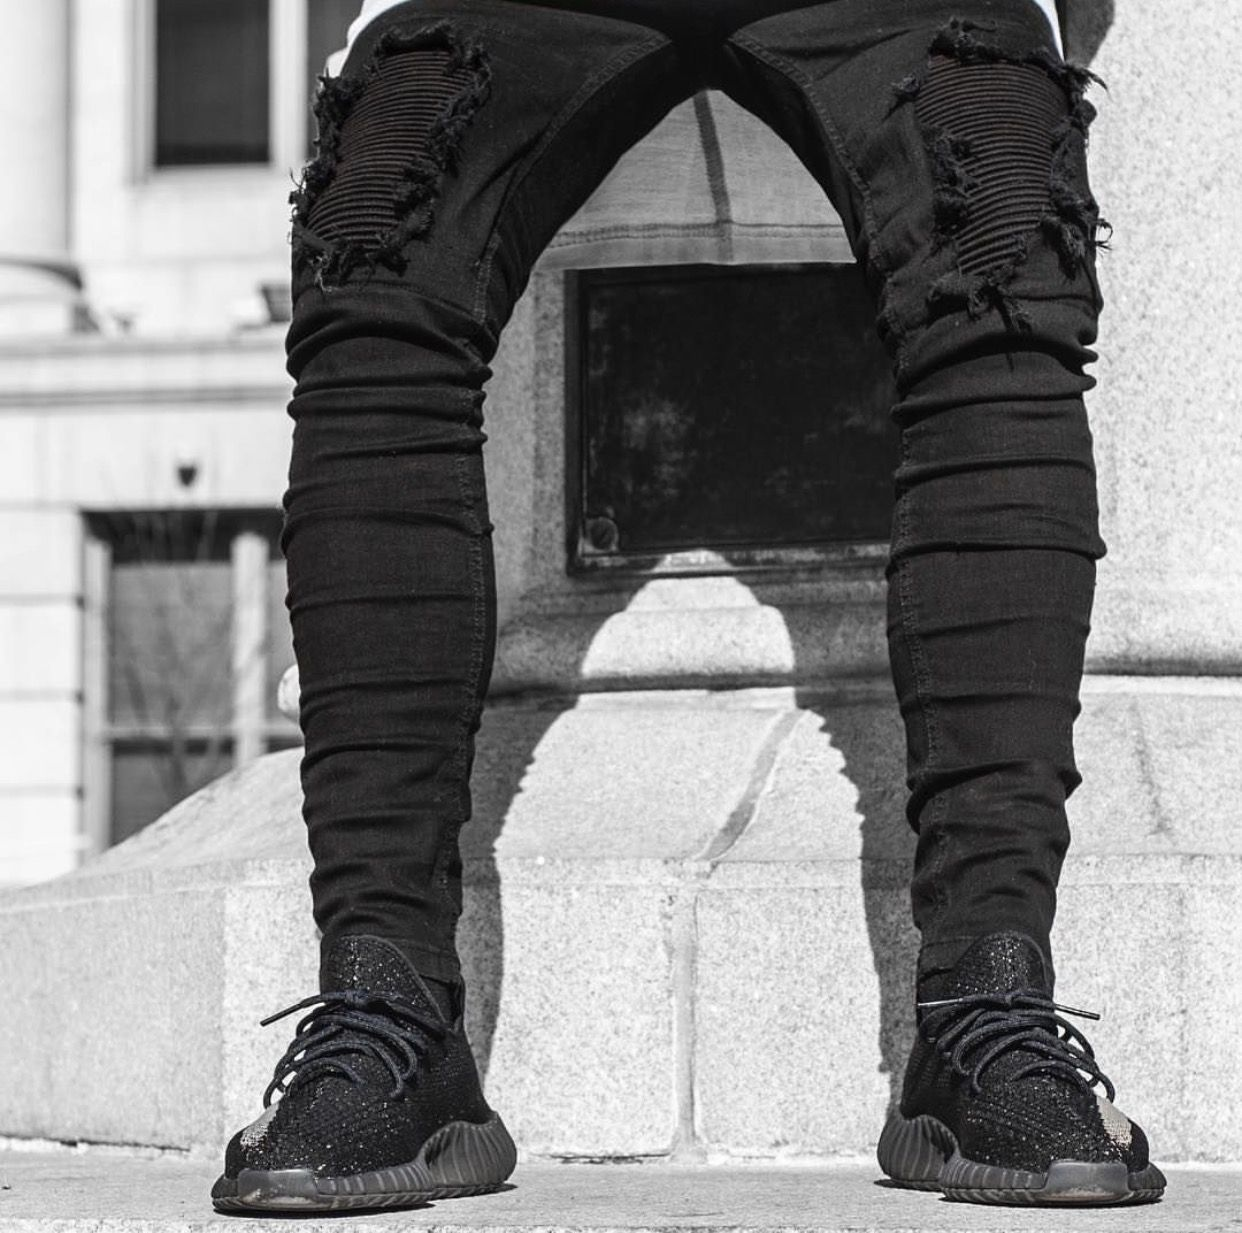 ff47f2be133 Biker Blk Jeans (Informal Apparel) adidas Yeezy Boost 350 V2 Oreo ...